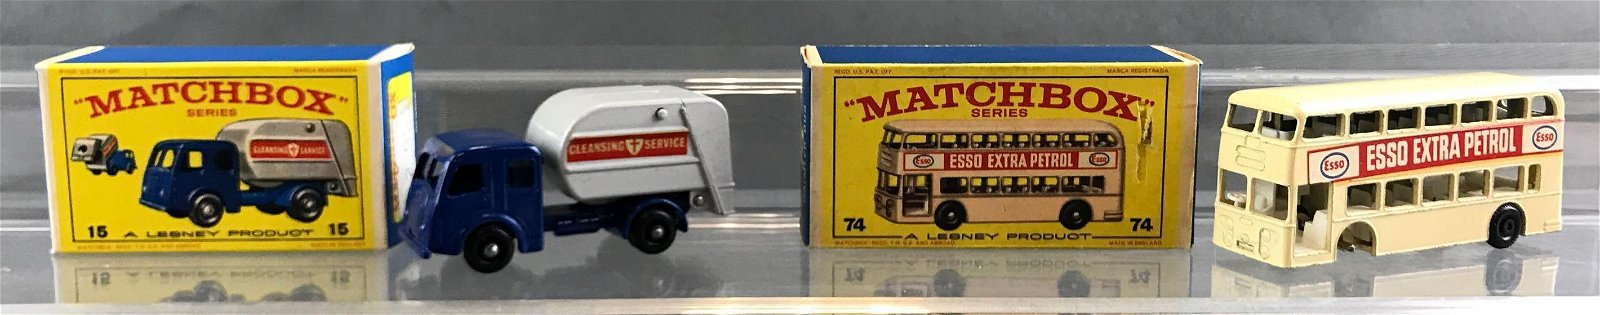 Group of 2 Matchbox die cast vehicles in original boxes